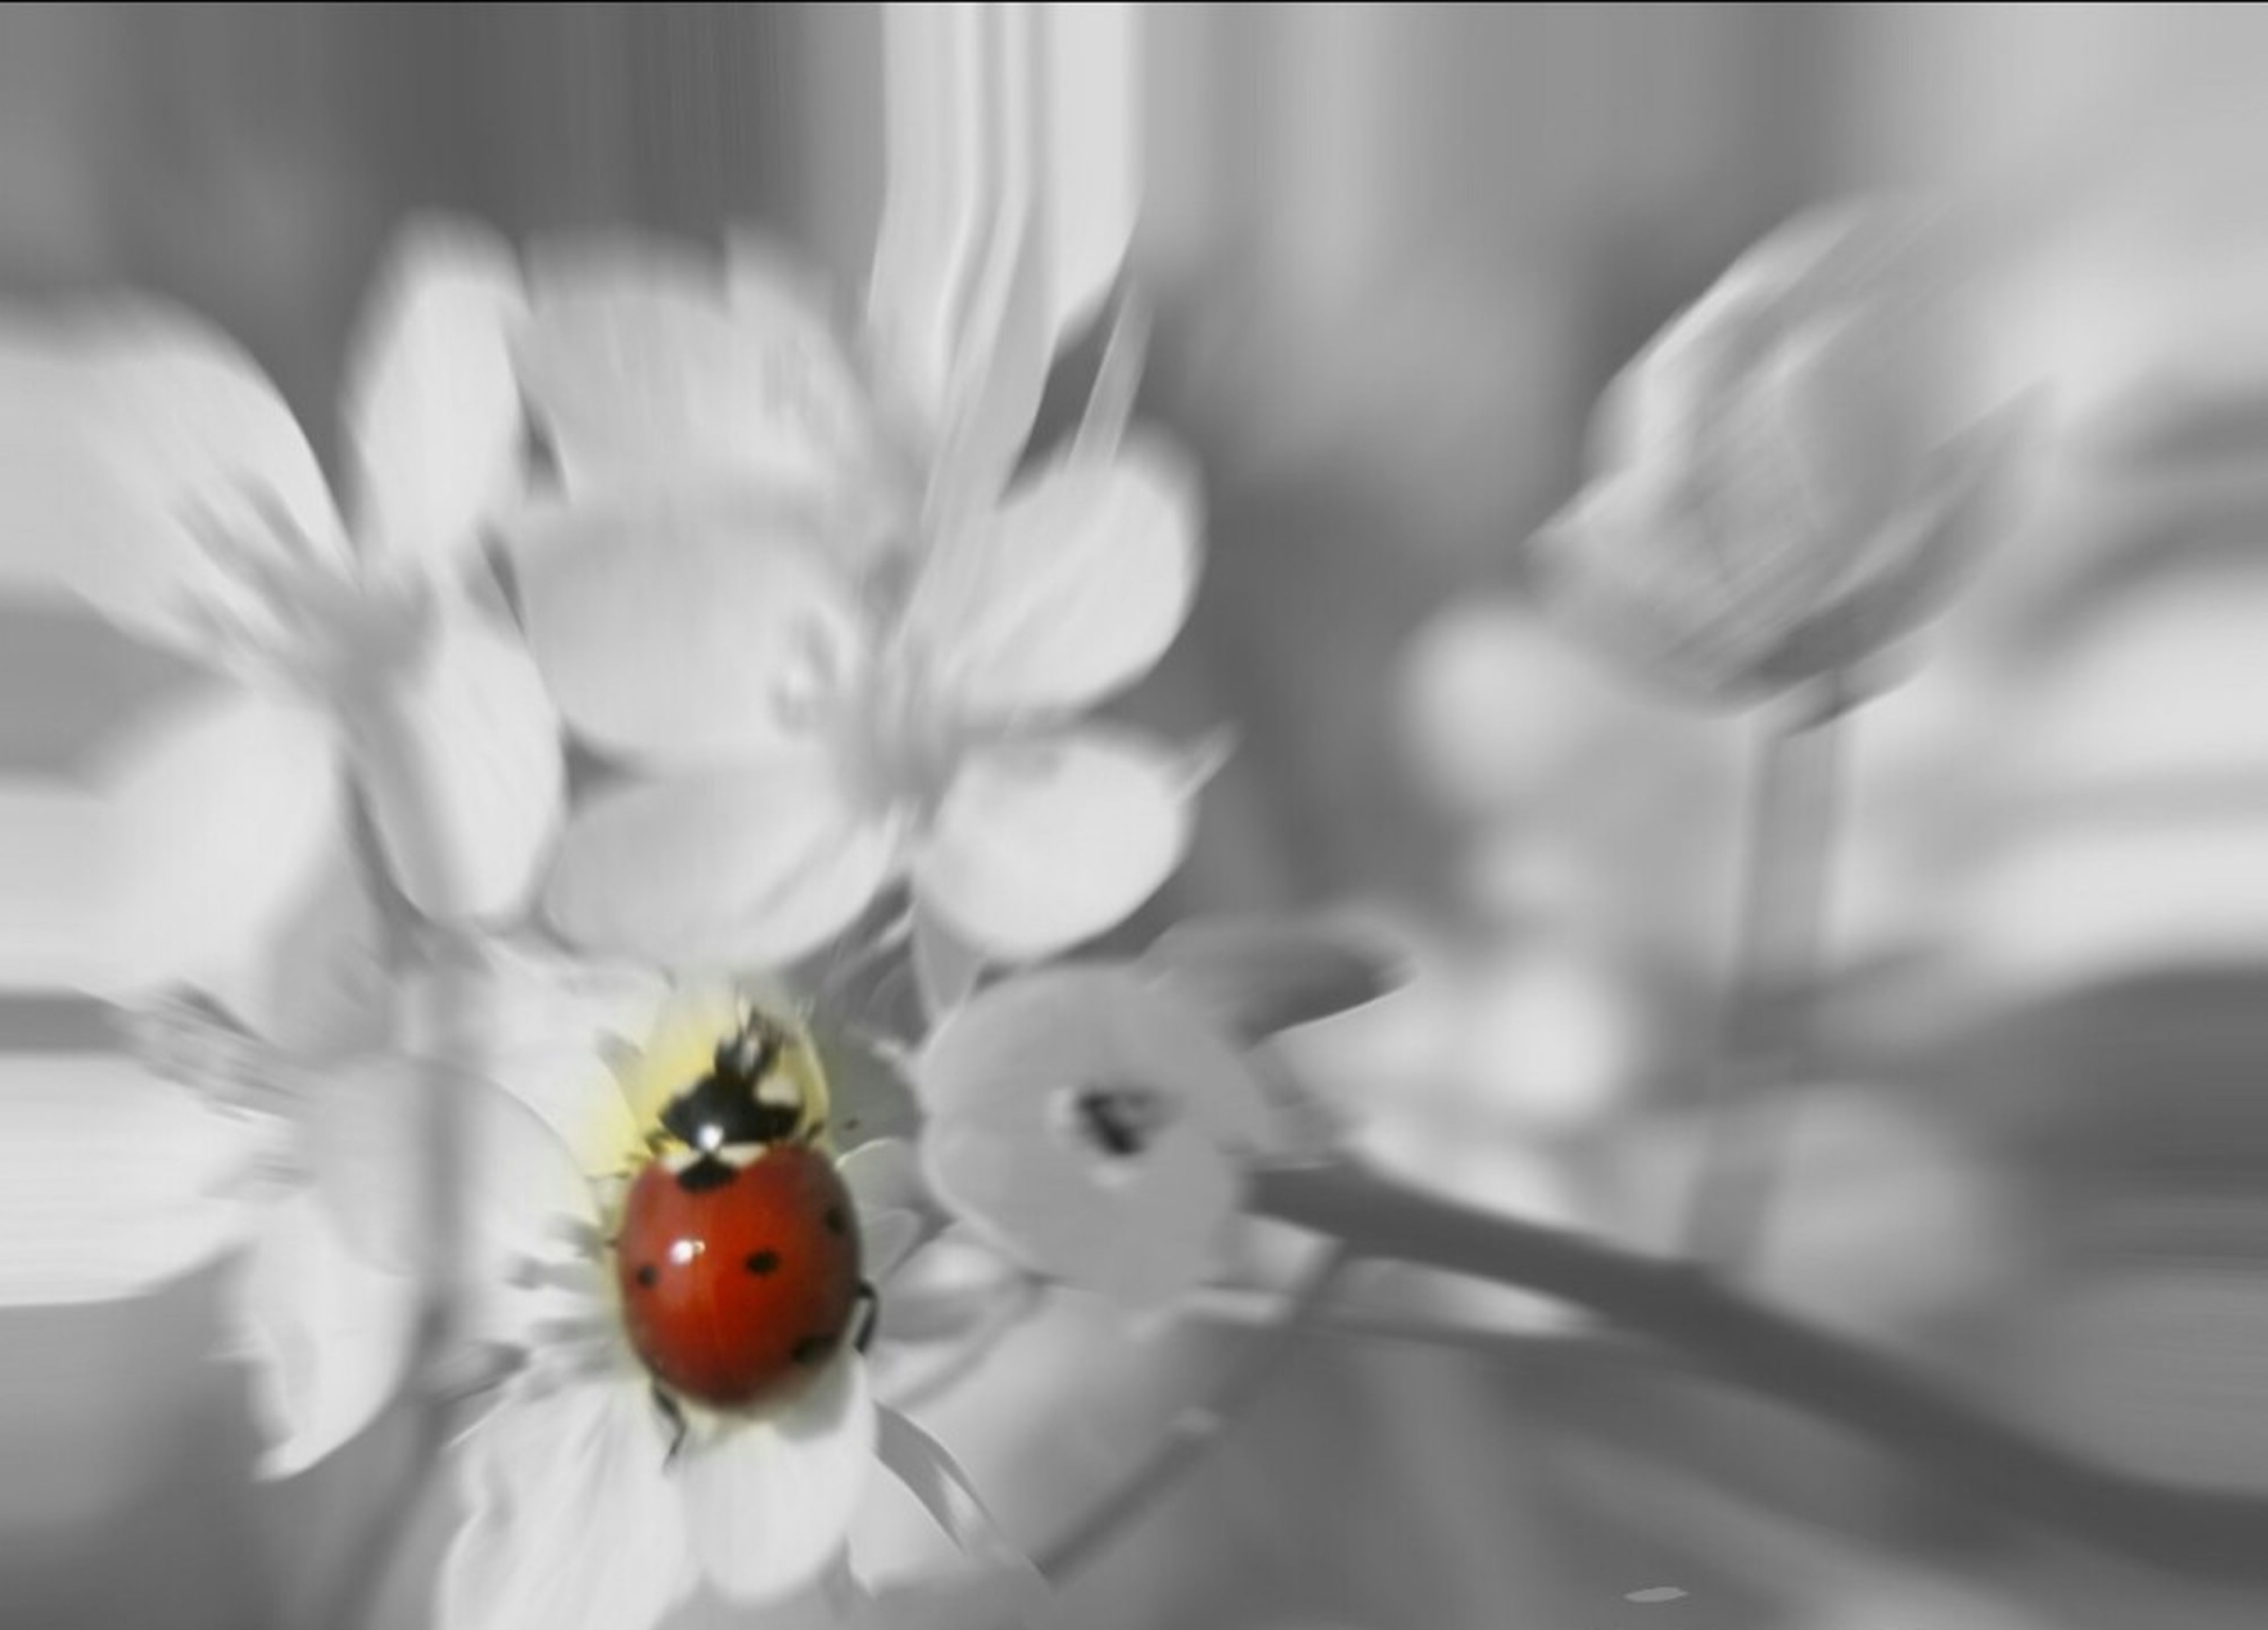 flower, close-up, freshness, insect, fragility, focus on foreground, selective focus, nature, ladybug, animal themes, beauty in nature, red, petal, indoors, growth, plant, no people, bud, white color, day